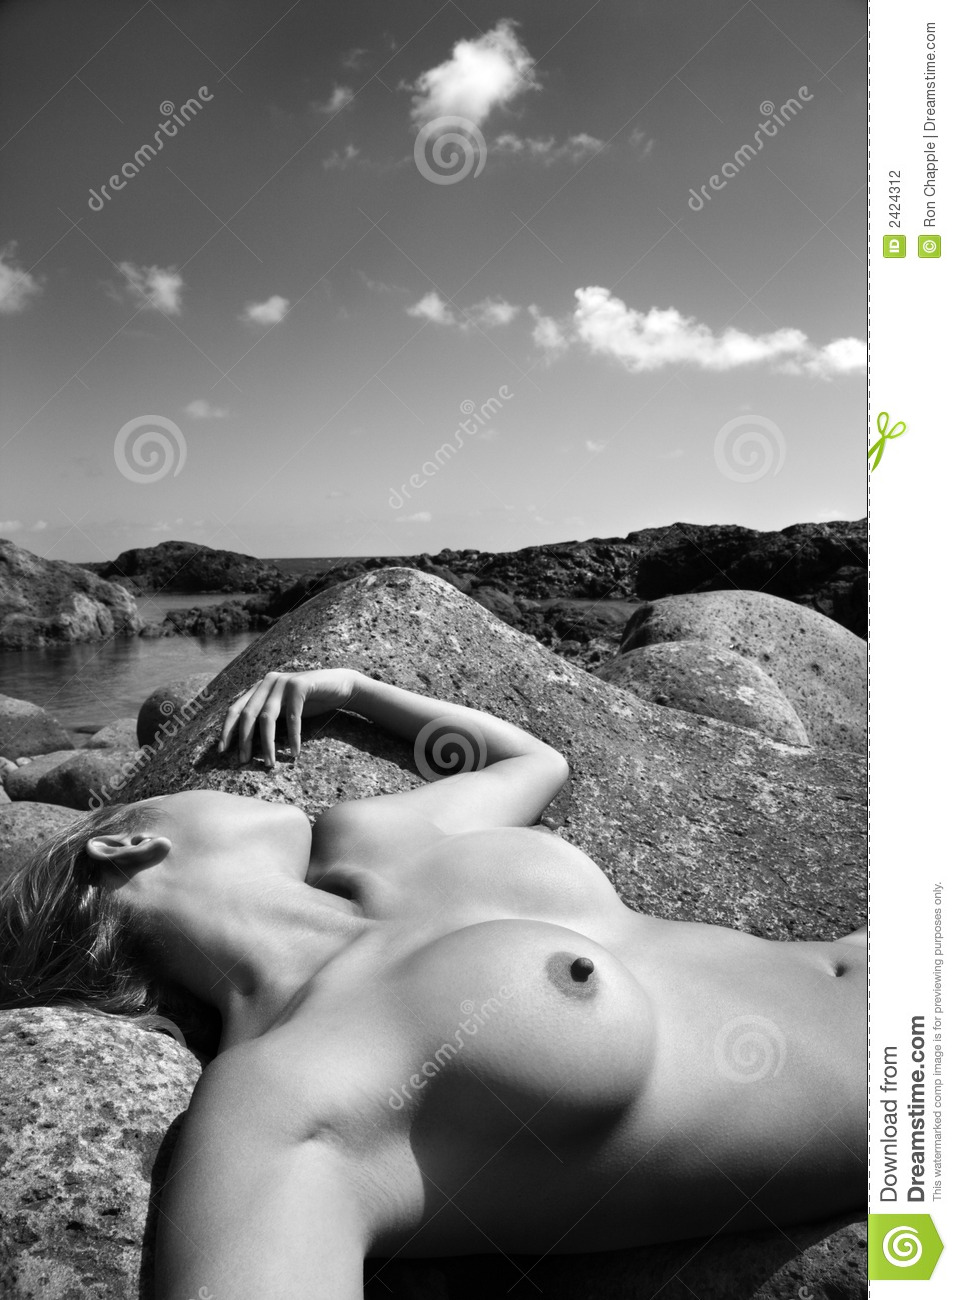 Young Nude Asian Woman Lying On Back Rock With Face Turned Away